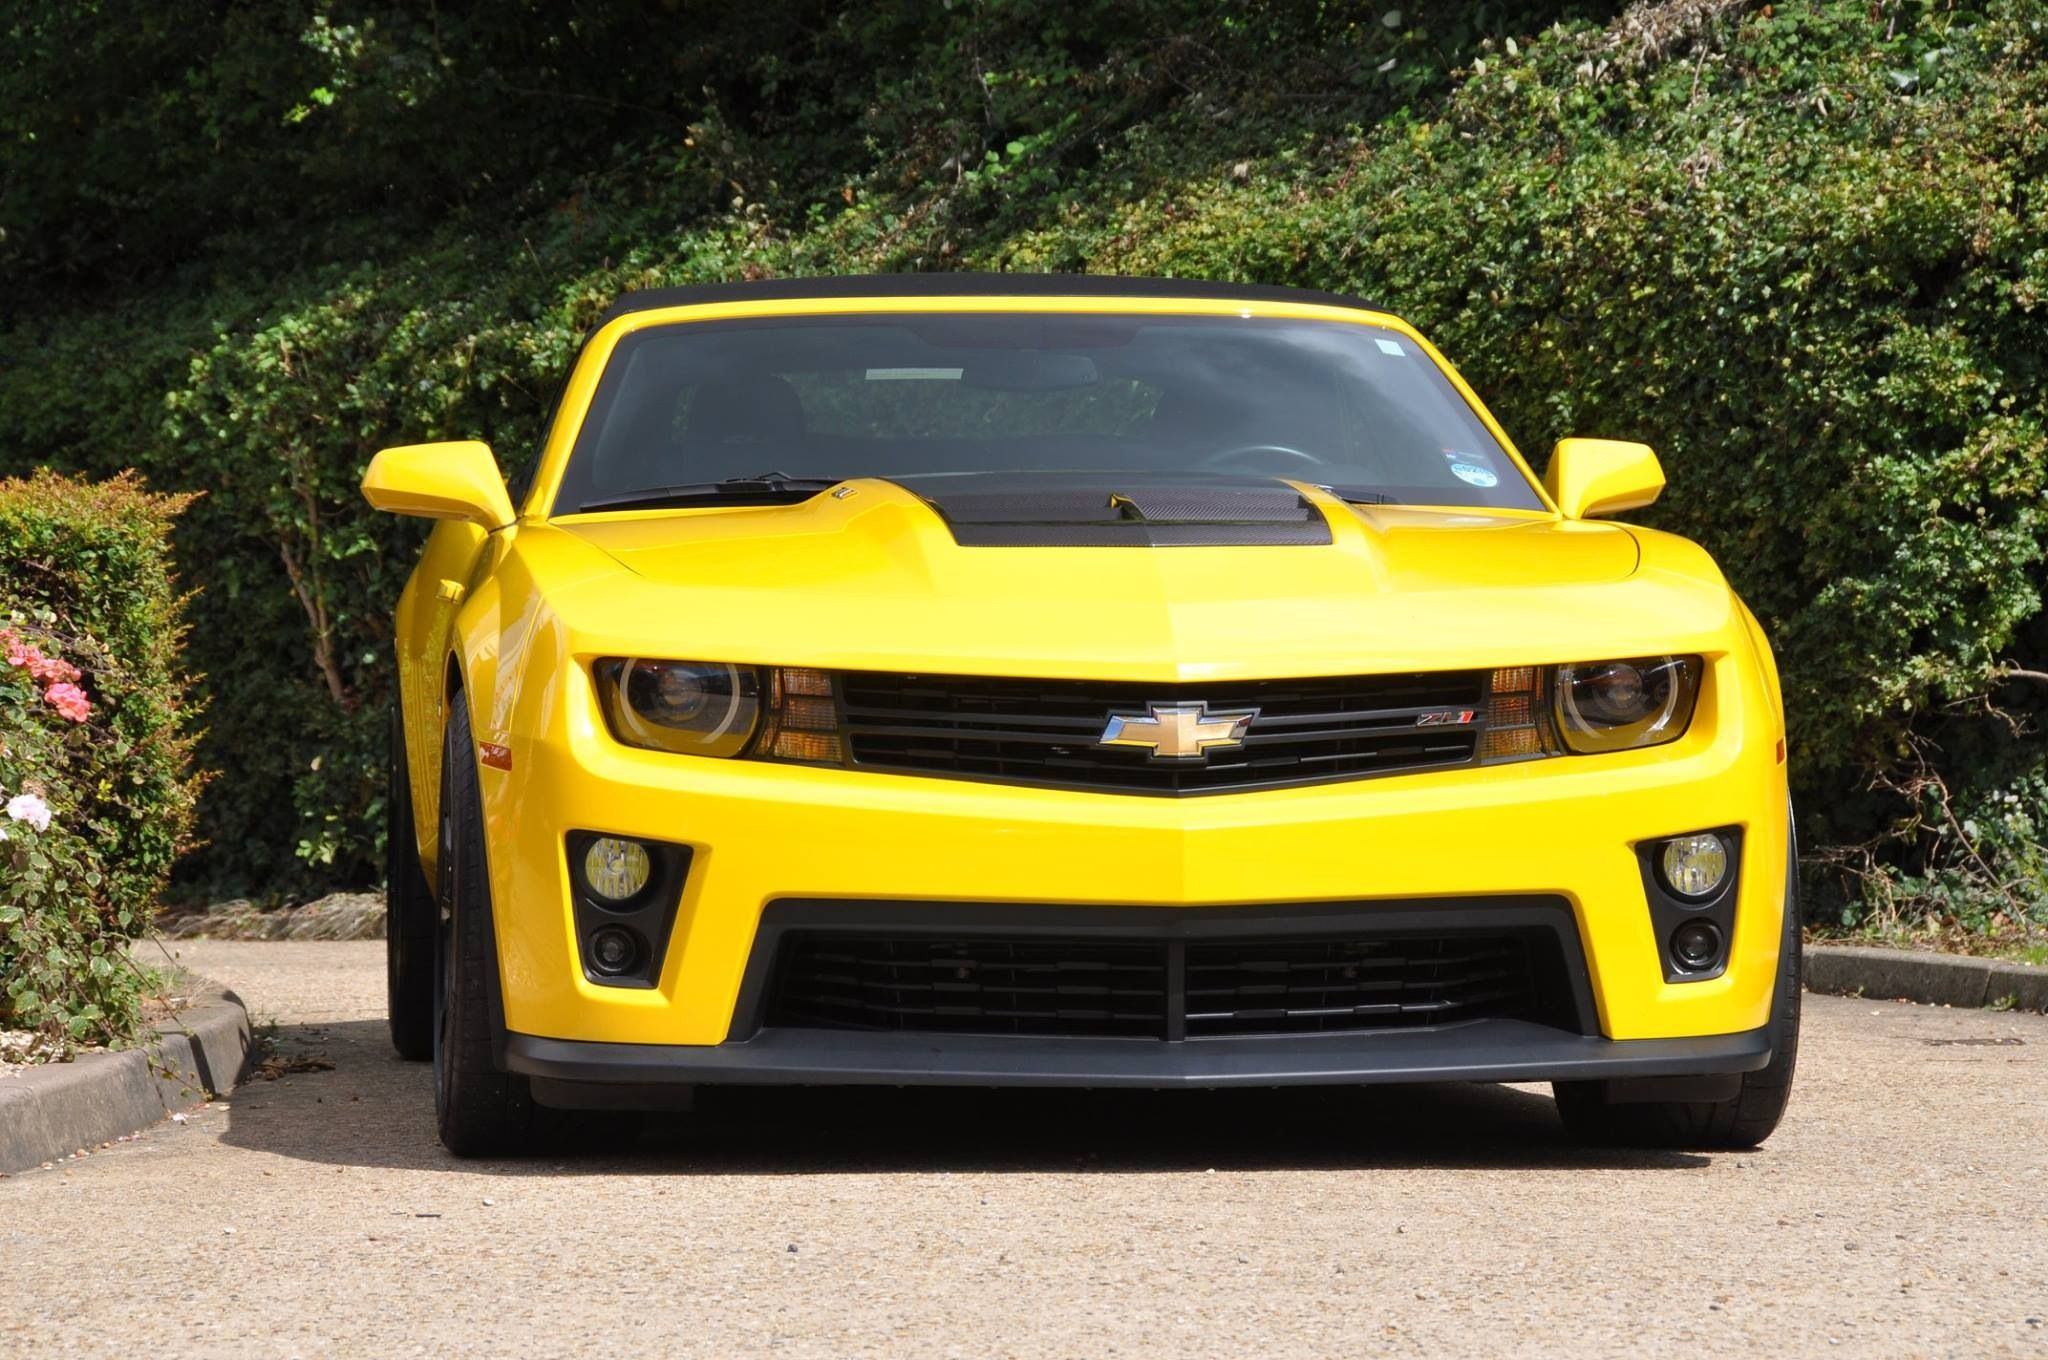 Camaro Zl1 Supercharged Convertible In Yellow Zl1 Camaro Chevy